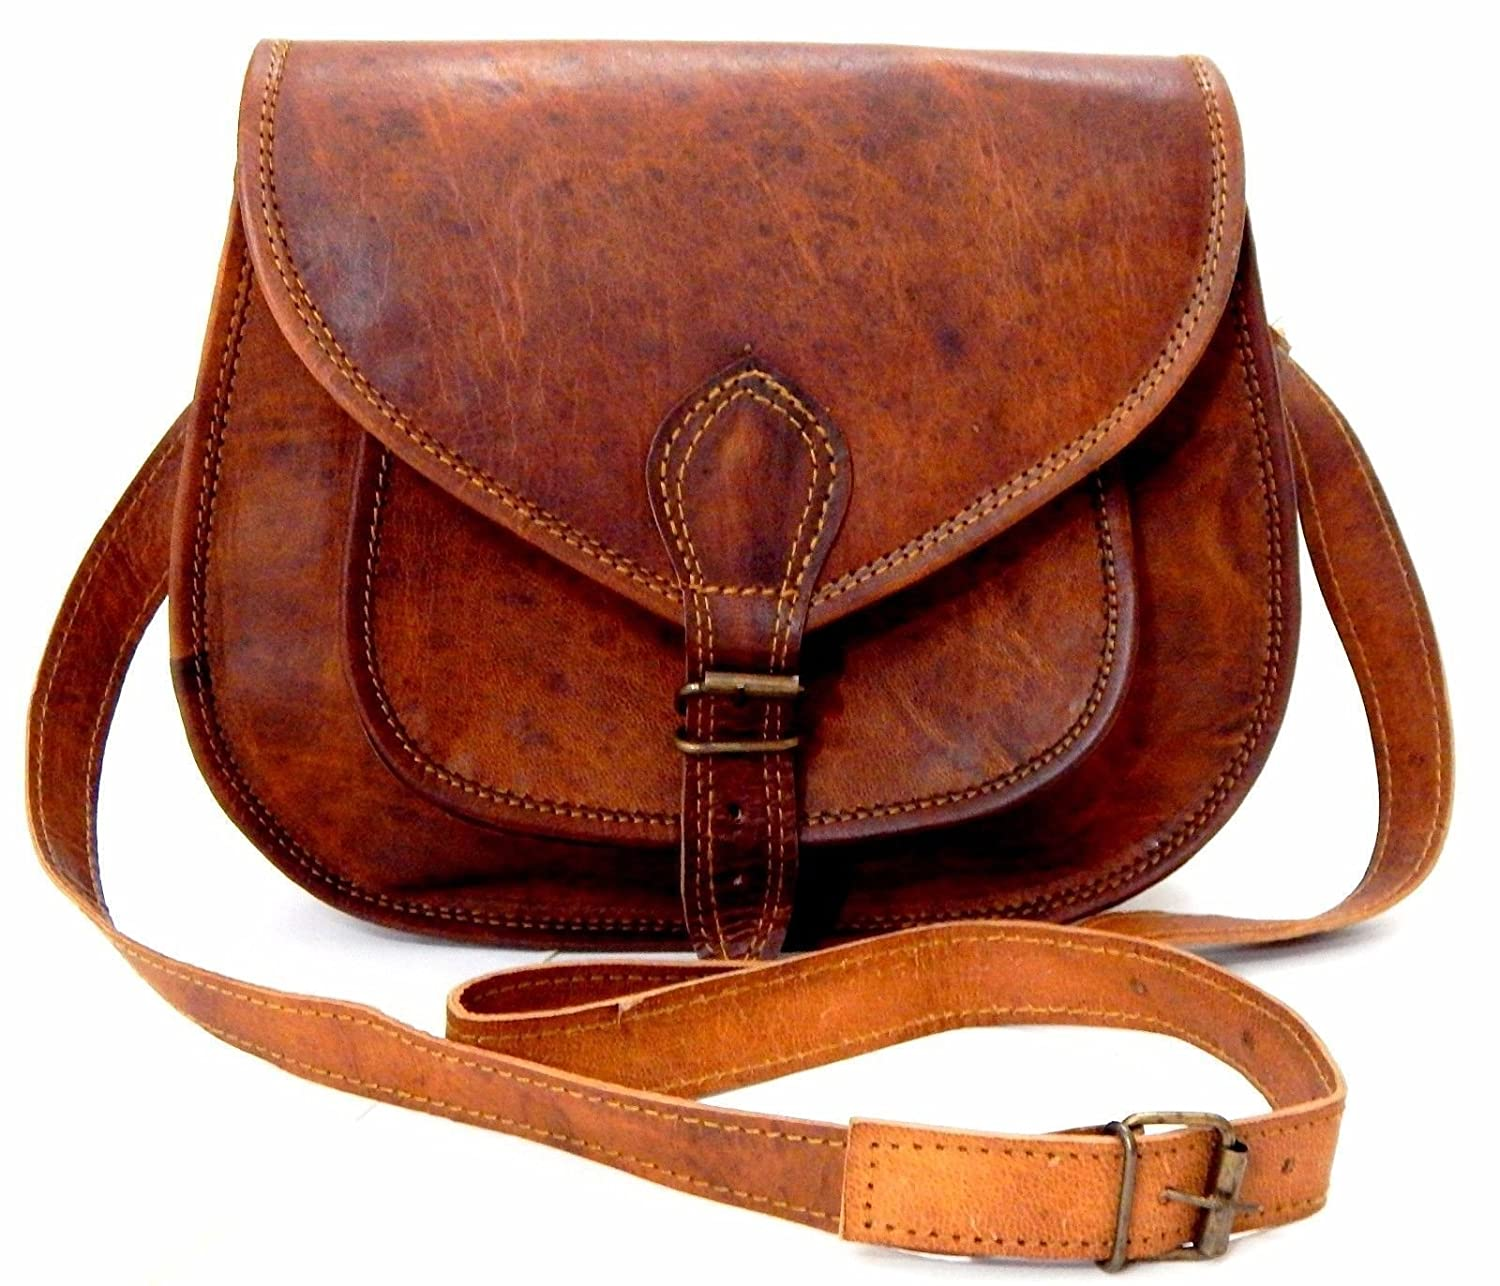 Shakun Leather Handmade Womens Vintage Genuine Brown Cross Body Bag, NEW 5SLJ005